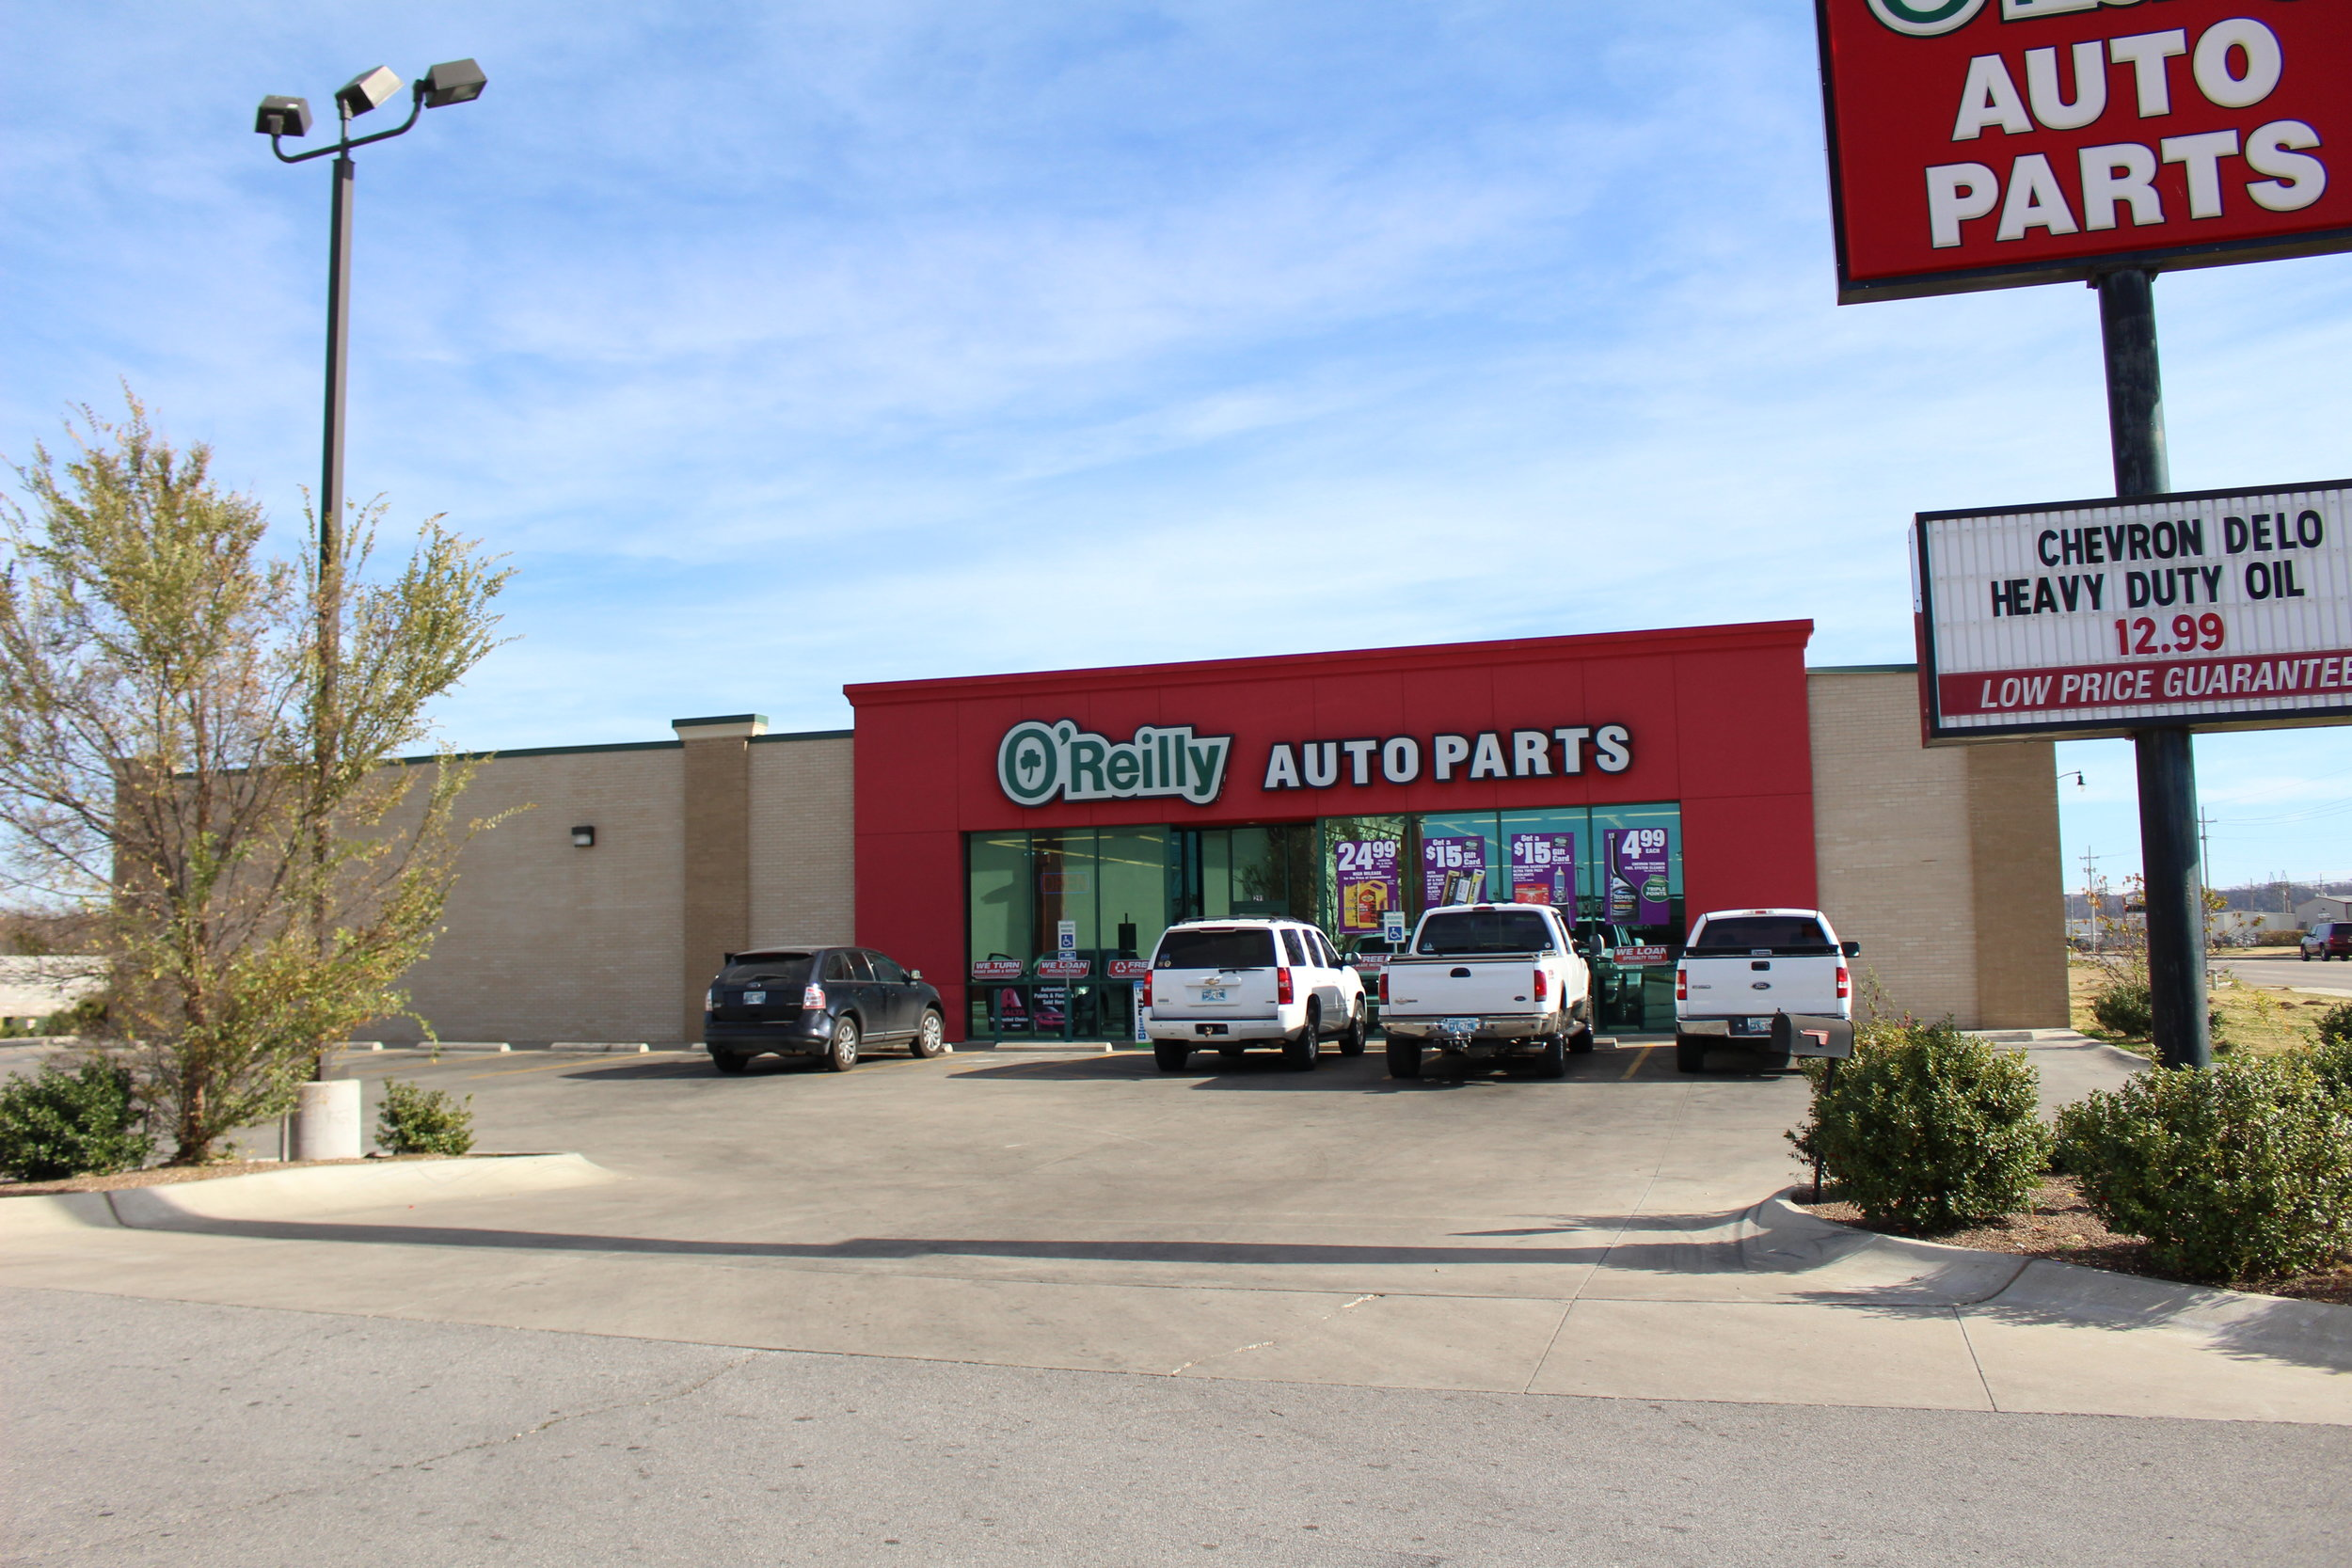 O'Reilly Auto parts - river west 291 west morrow road